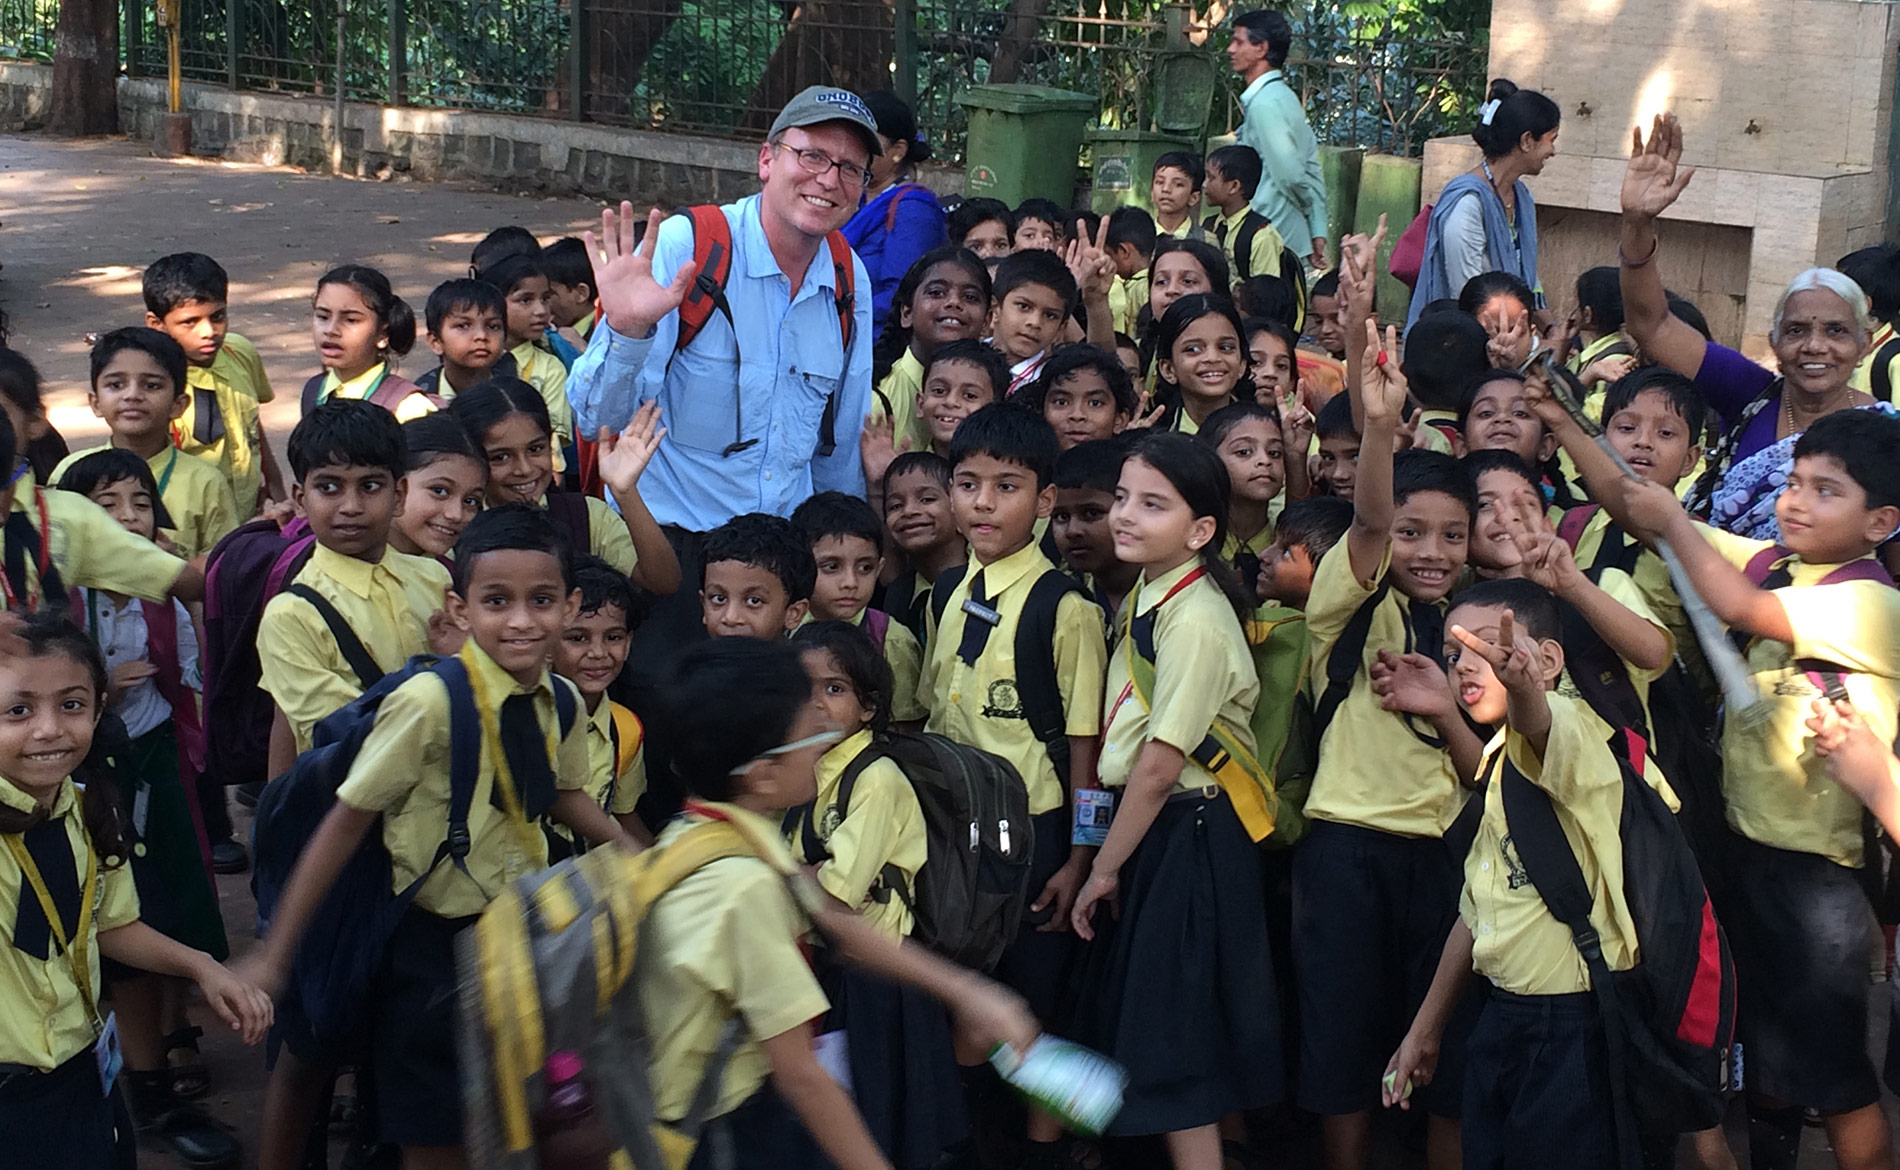 Author, John Shors, in India